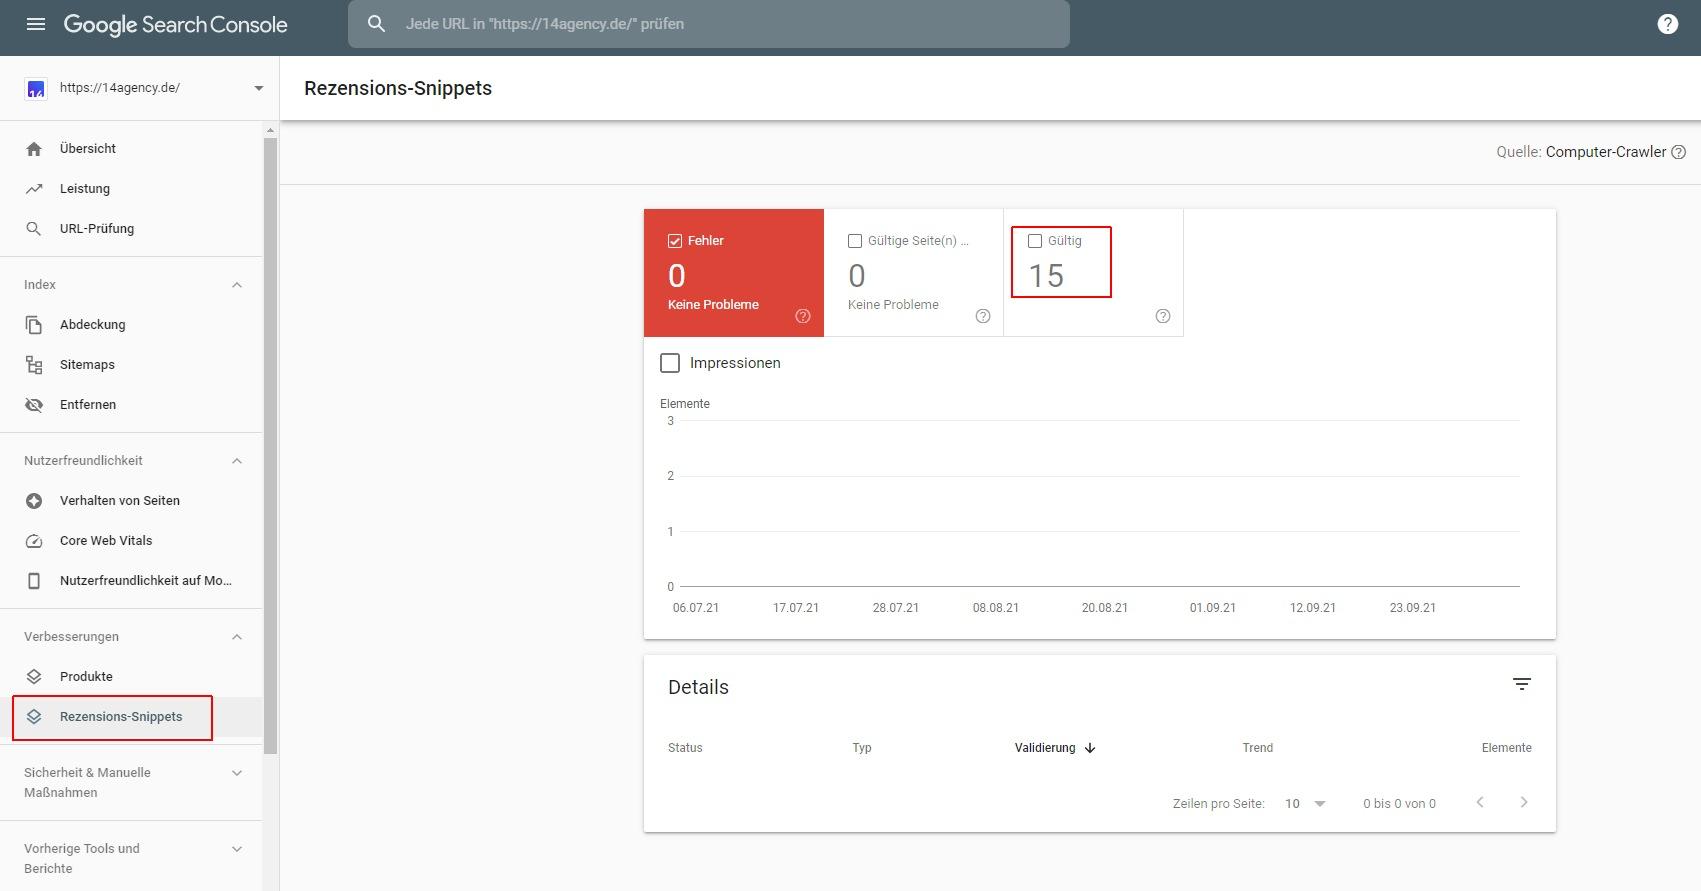 google-search-console-rezessions-snippets